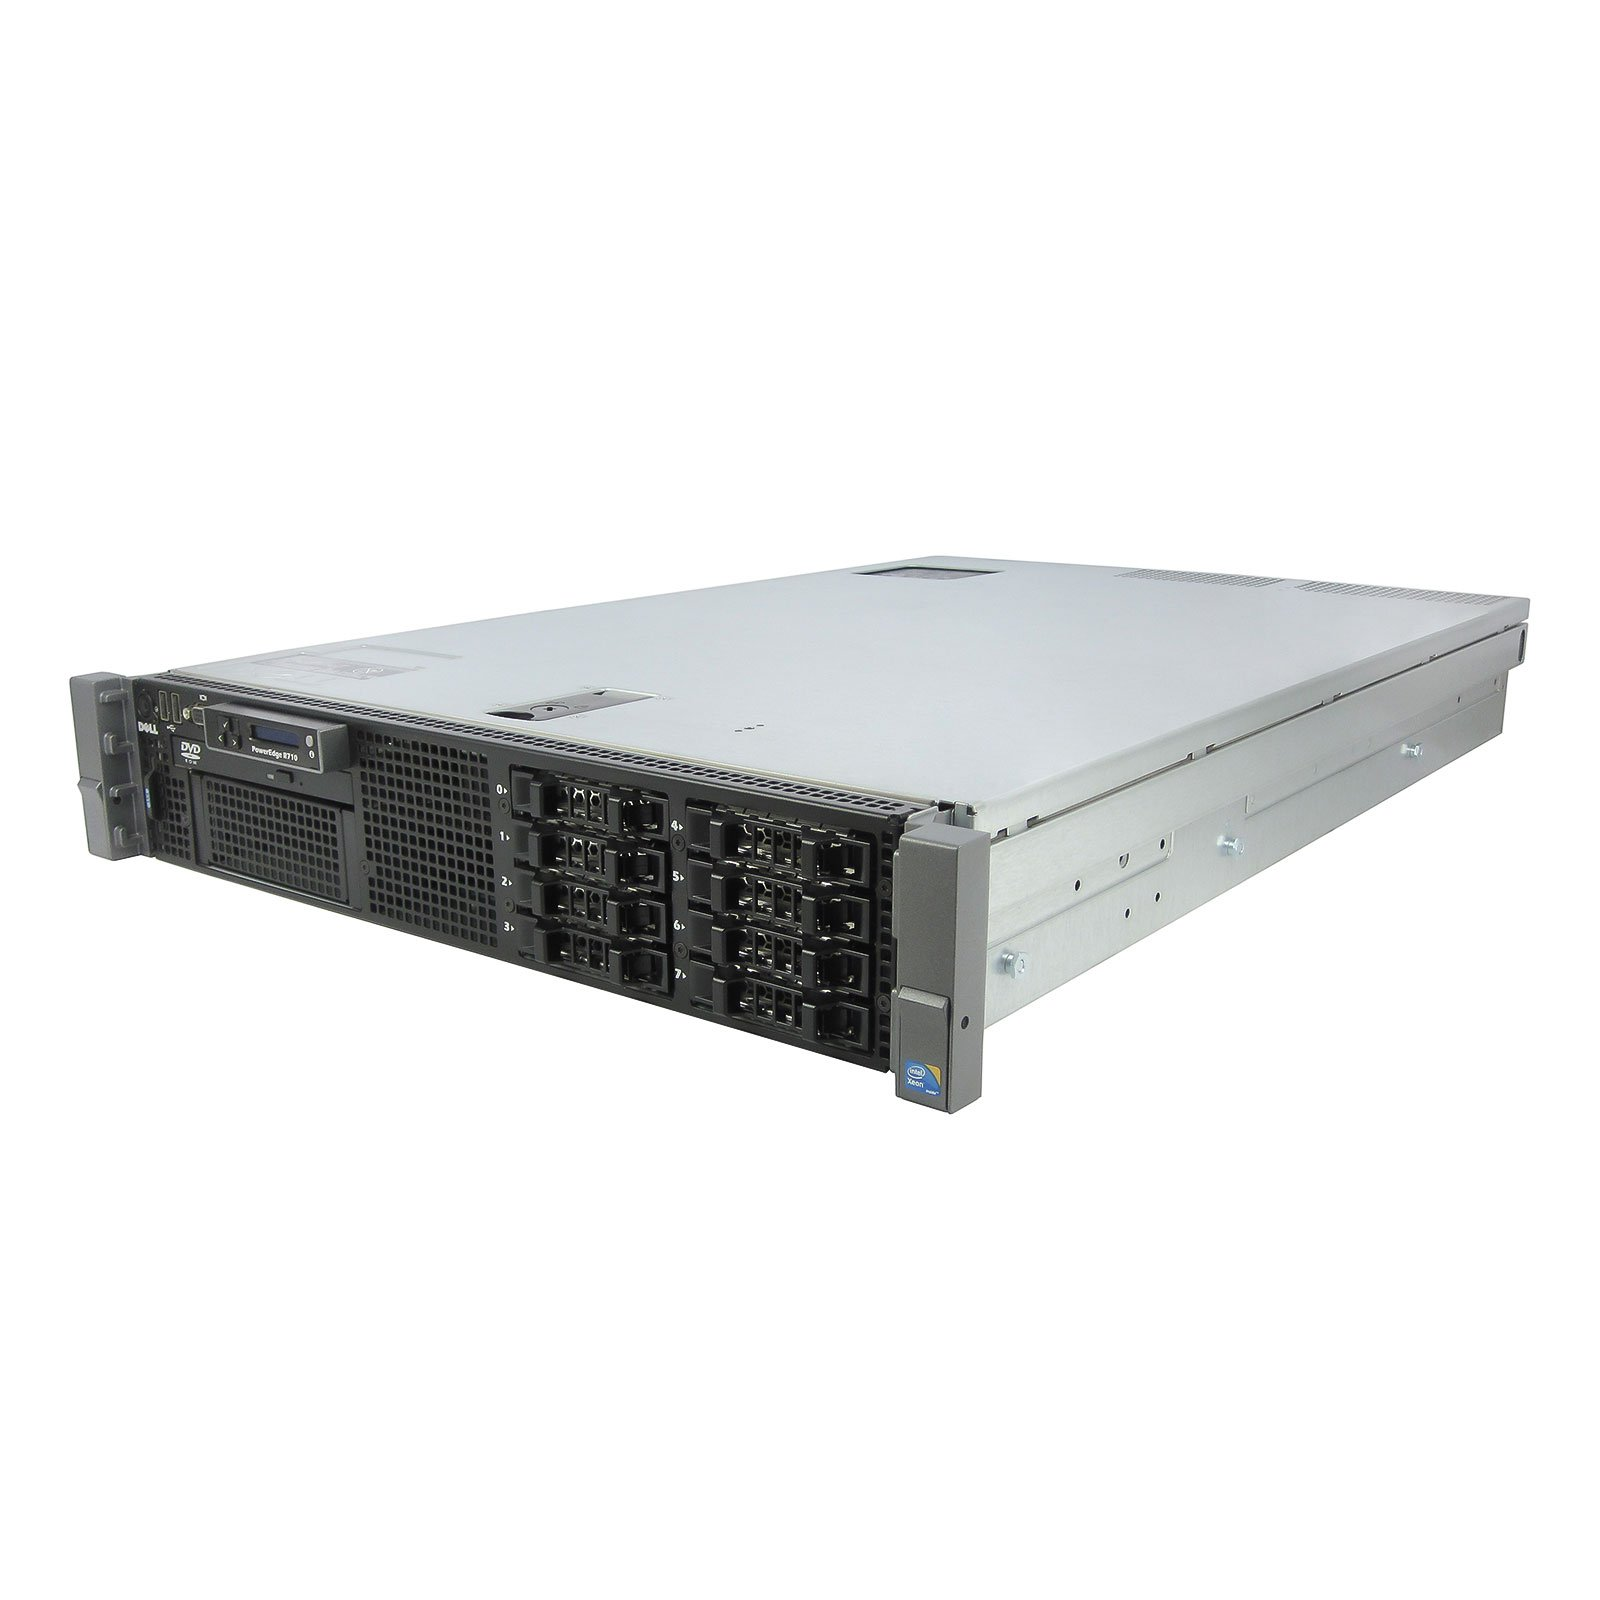 Energy-Efficient DELL PE R710 Server 2x 2.26Ghz L5520 QC 64GB 2x 300GB SSD (Certified Refurbished)